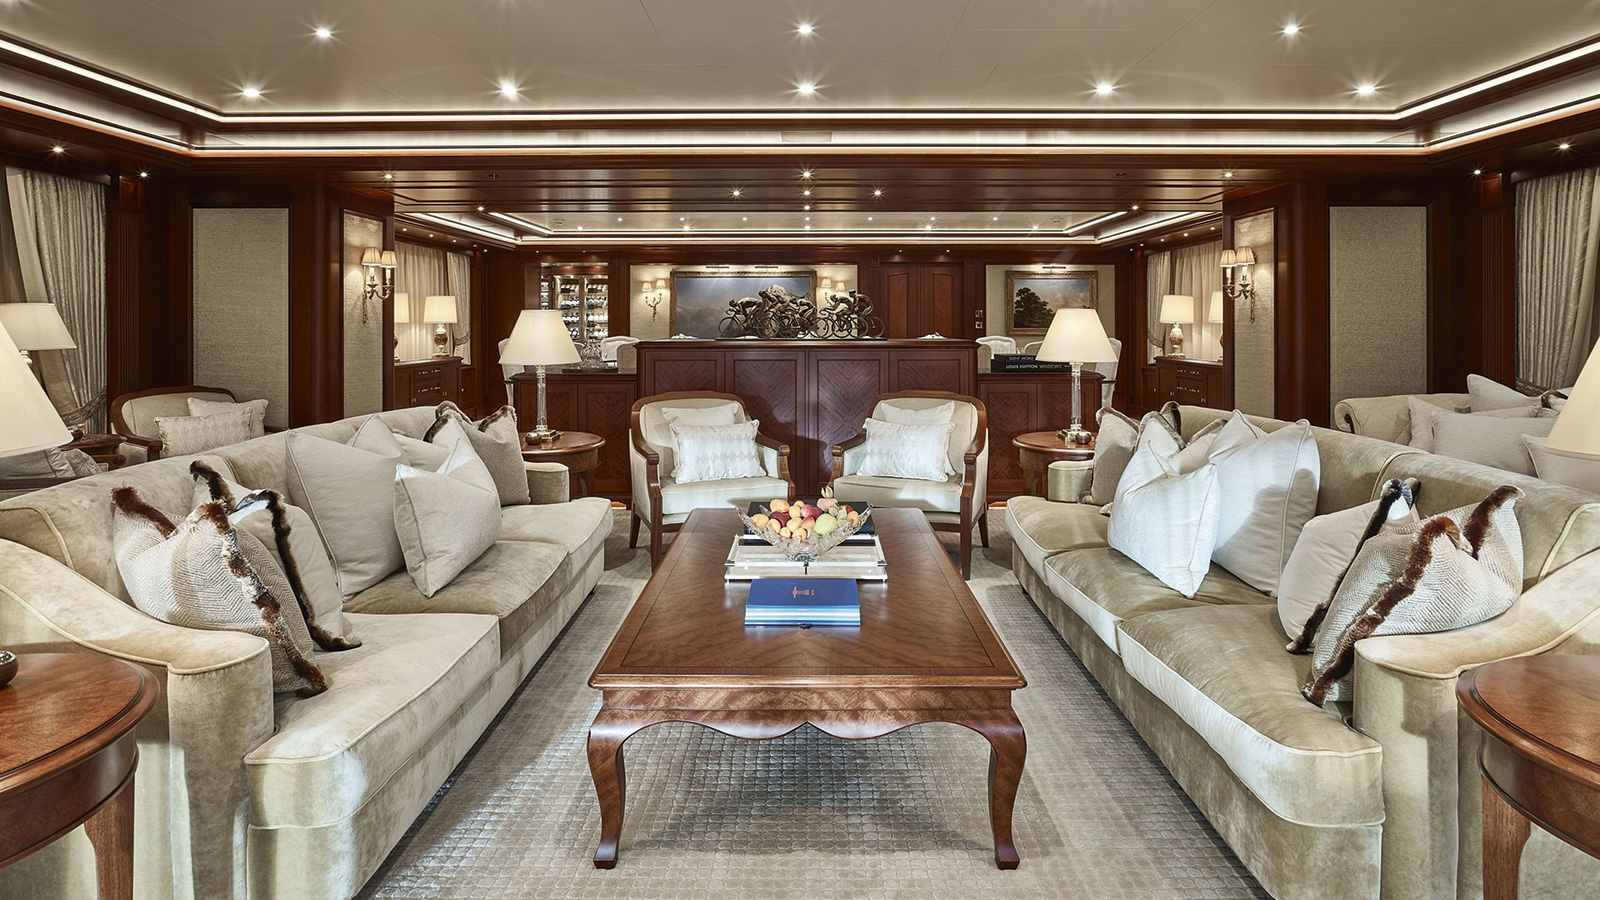 the-saloon-of-the-lurssen-superyacht-areti-credit-michael-baginski